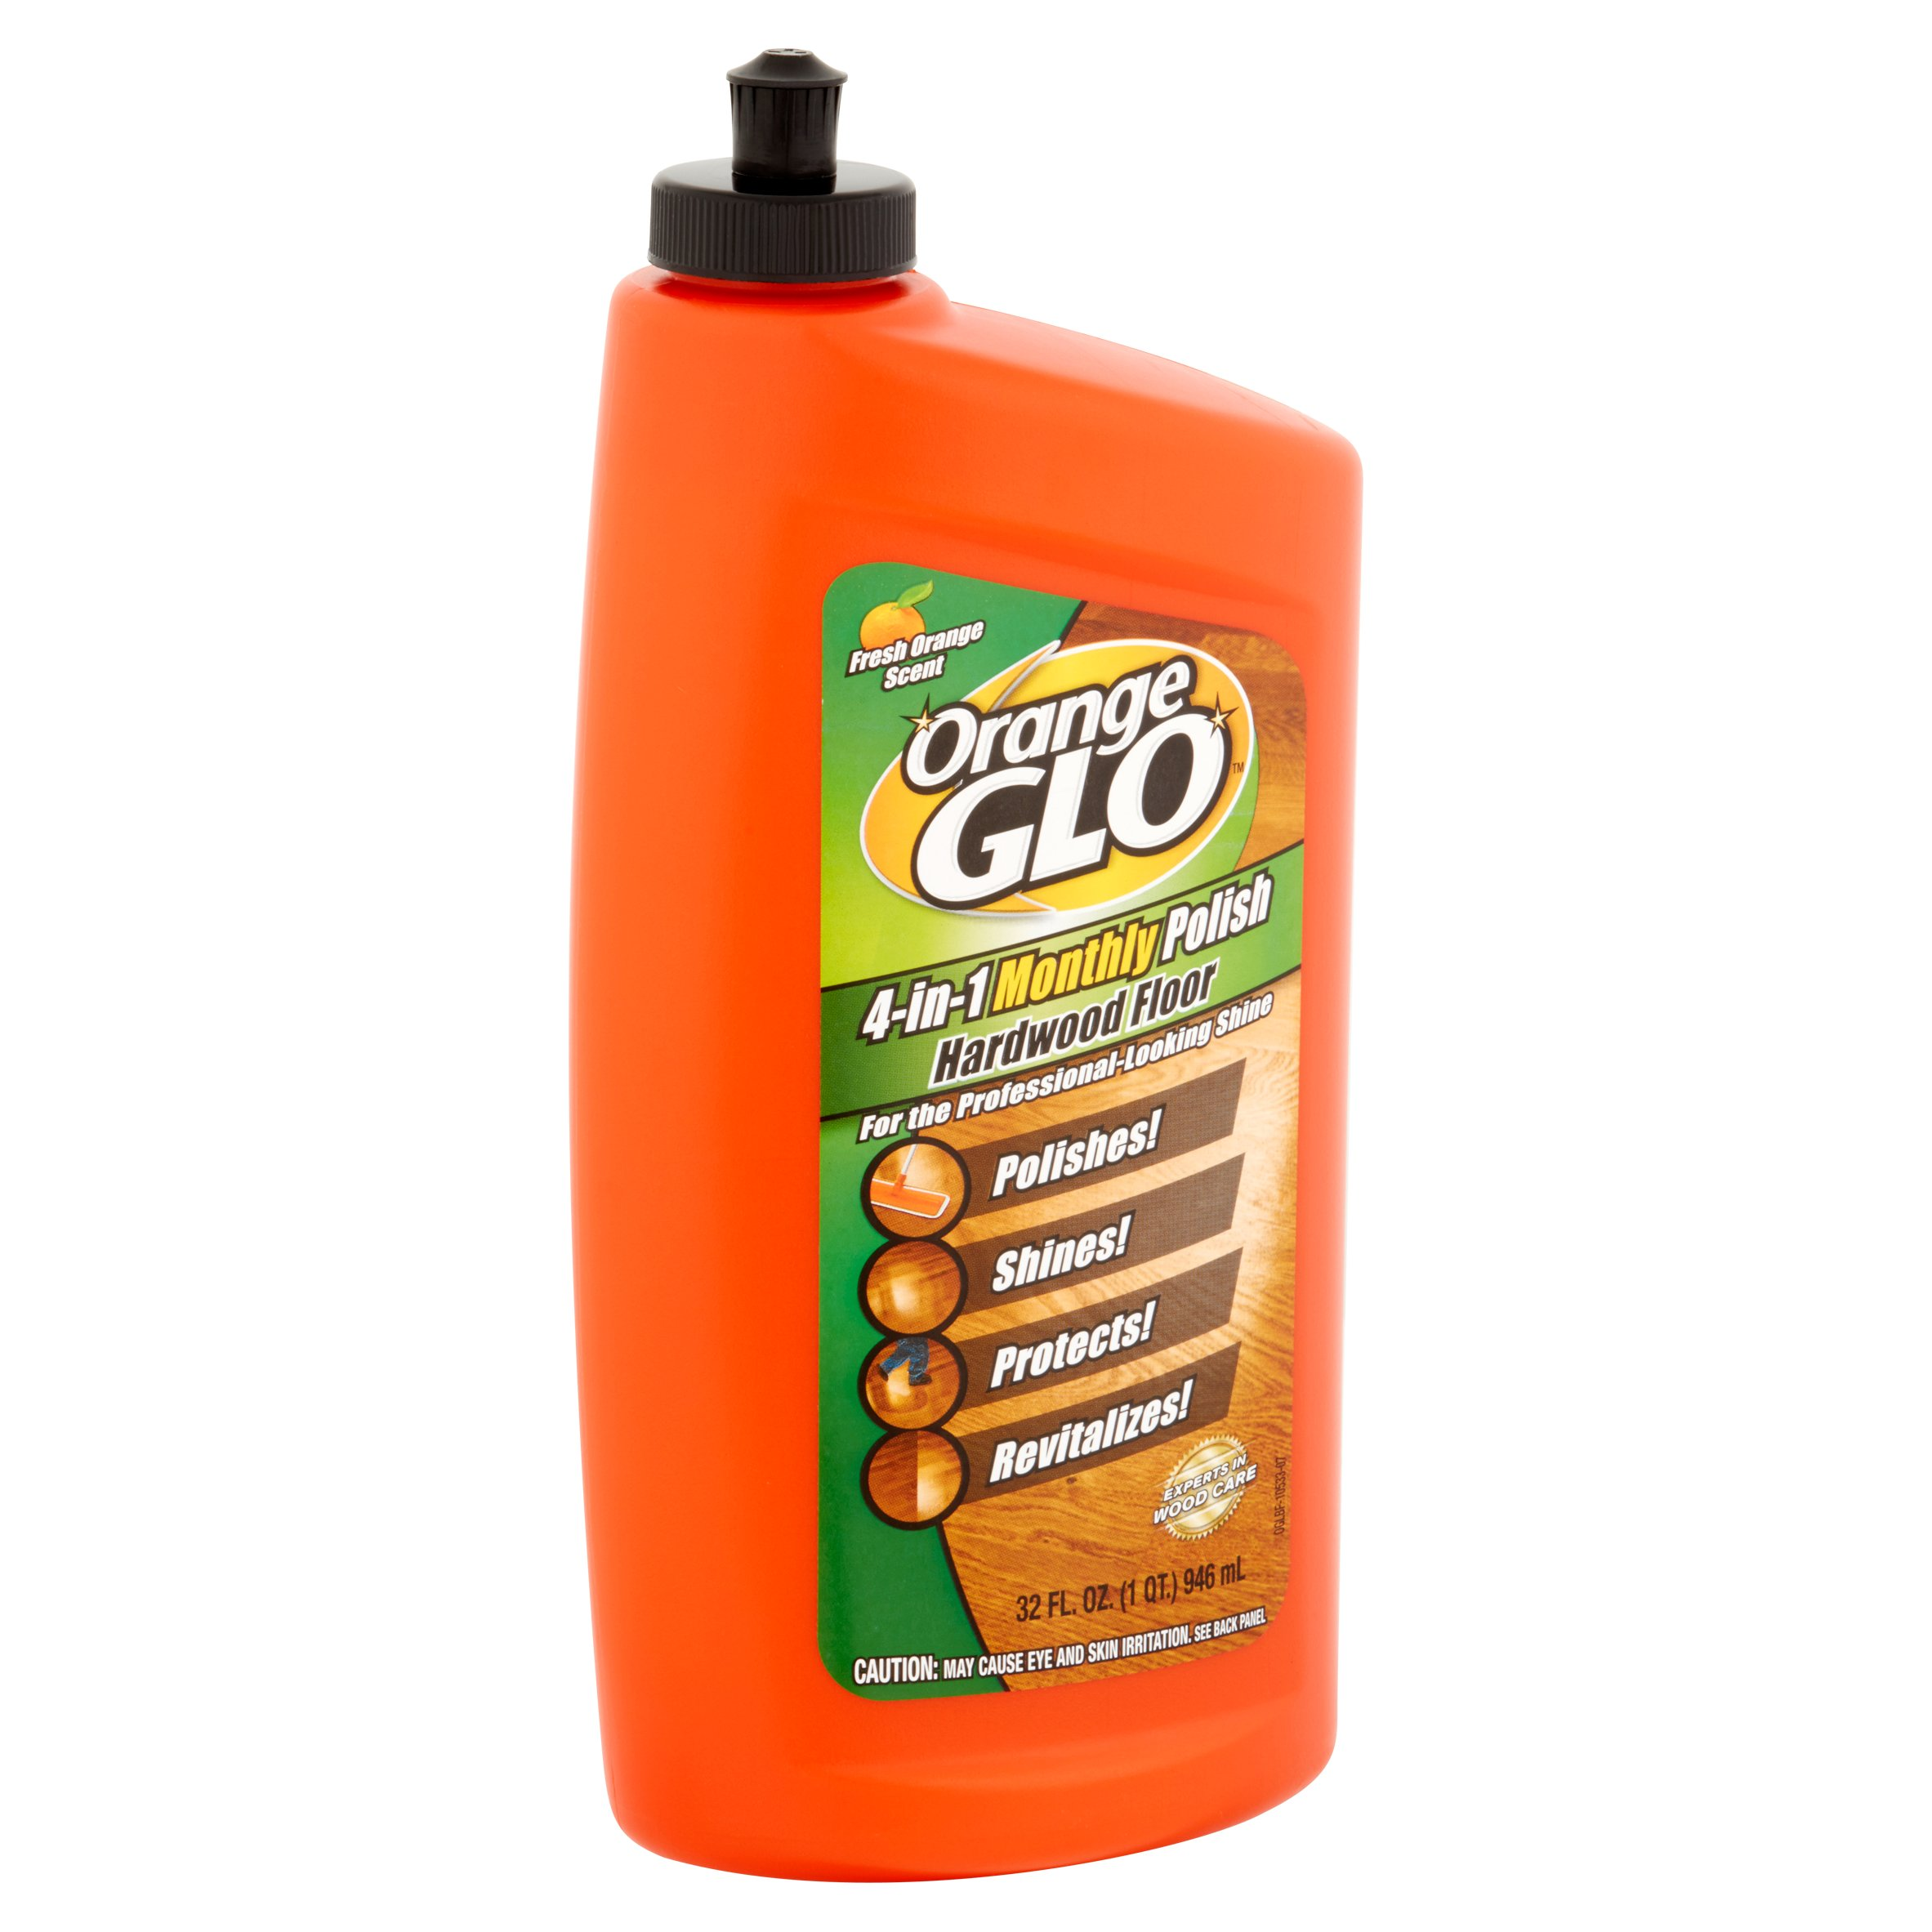 Orange Glo Hardwood Floor Polish, Orange Scent, 32oz Bottle